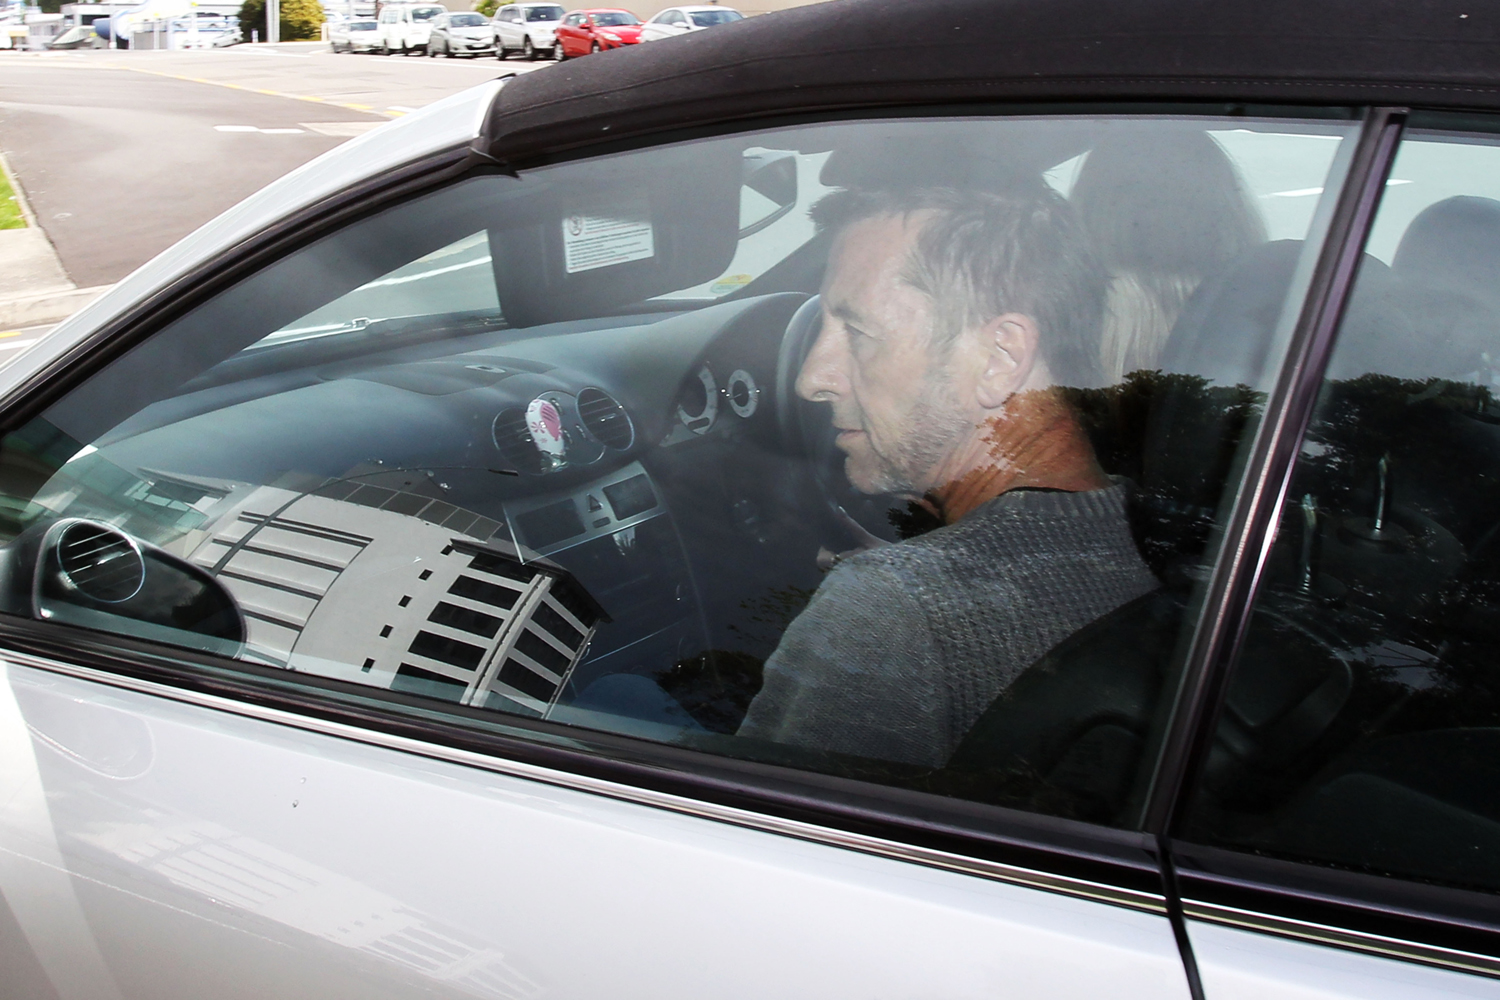 AC/DC drummer Phil Rudd leaves Tauranga District Court after being charged with attempting to procure murder on November 6, 2014 in Tauranga, New Zealand.